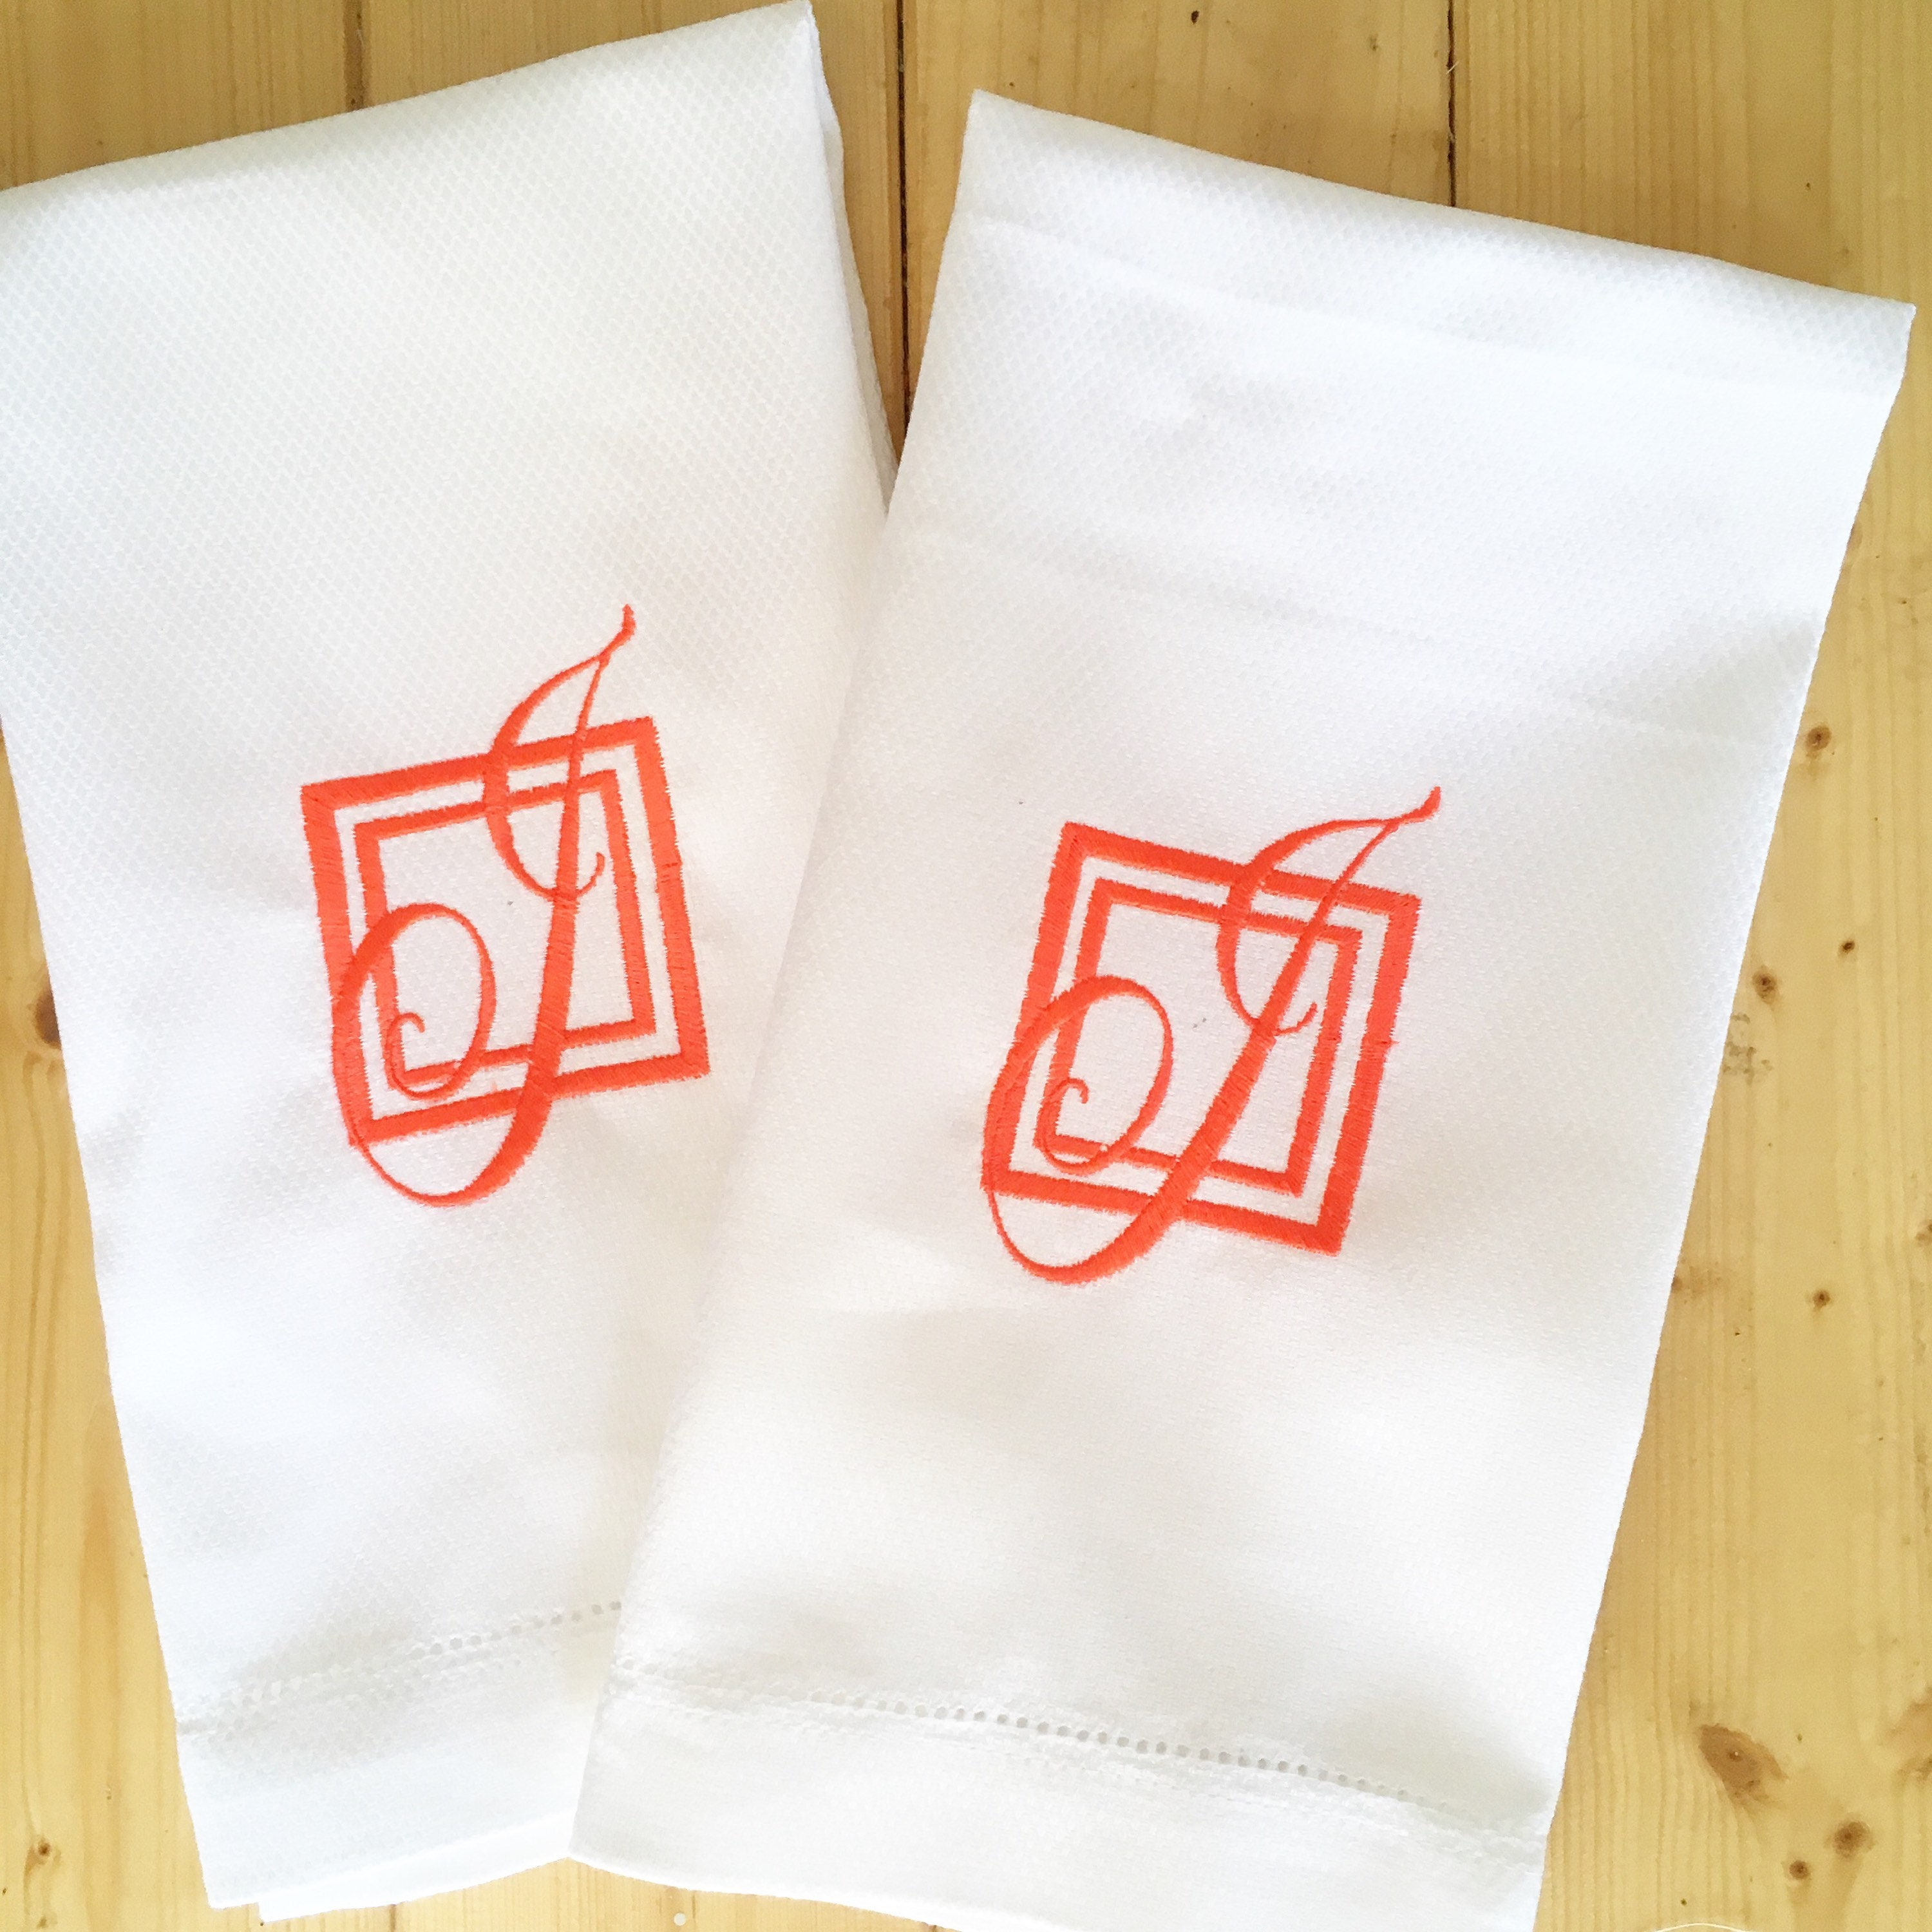 Embroidered Towels For Wedding Gift: Monogram Guest Towel / Wedding Gift / Monogram Gift / Hand